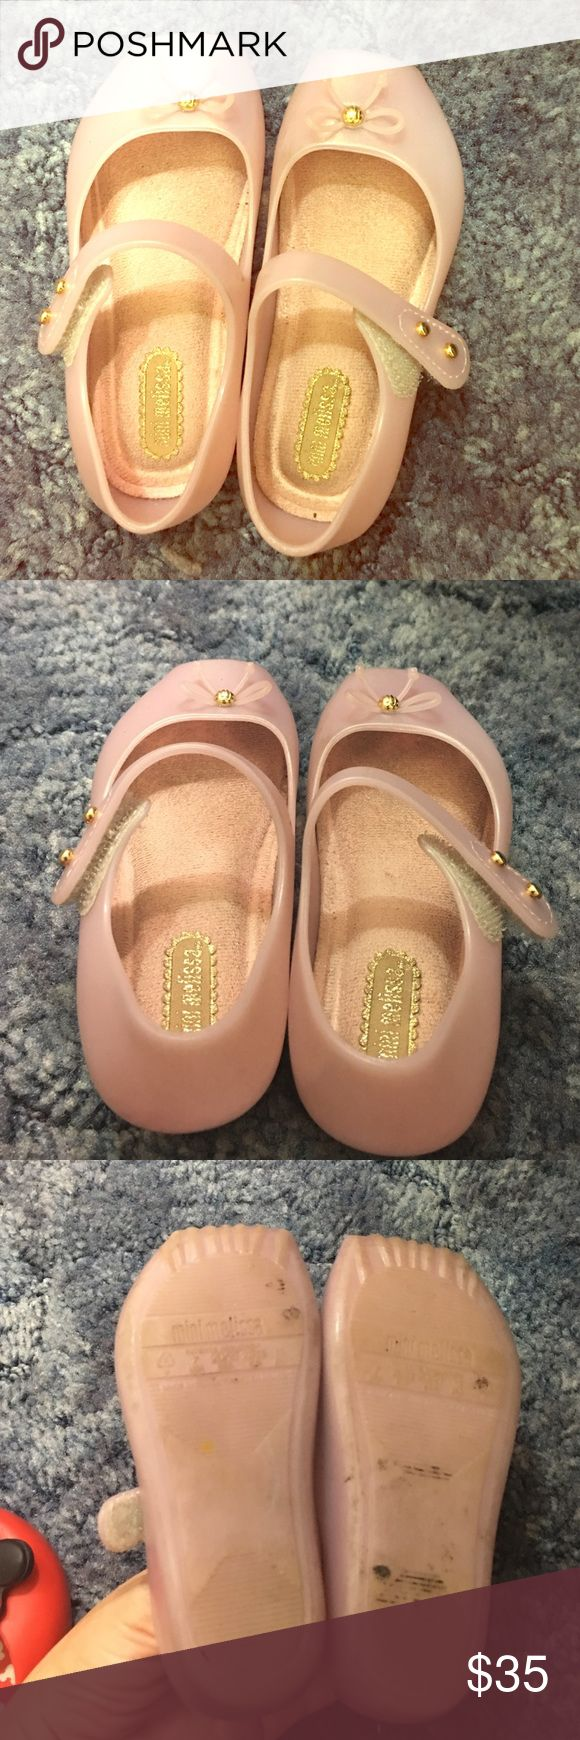 Mini Melissa shoes for sale Pink Toddler Mini Melissa for sale size 7 Mini Melissa Shoes Baby & Walker